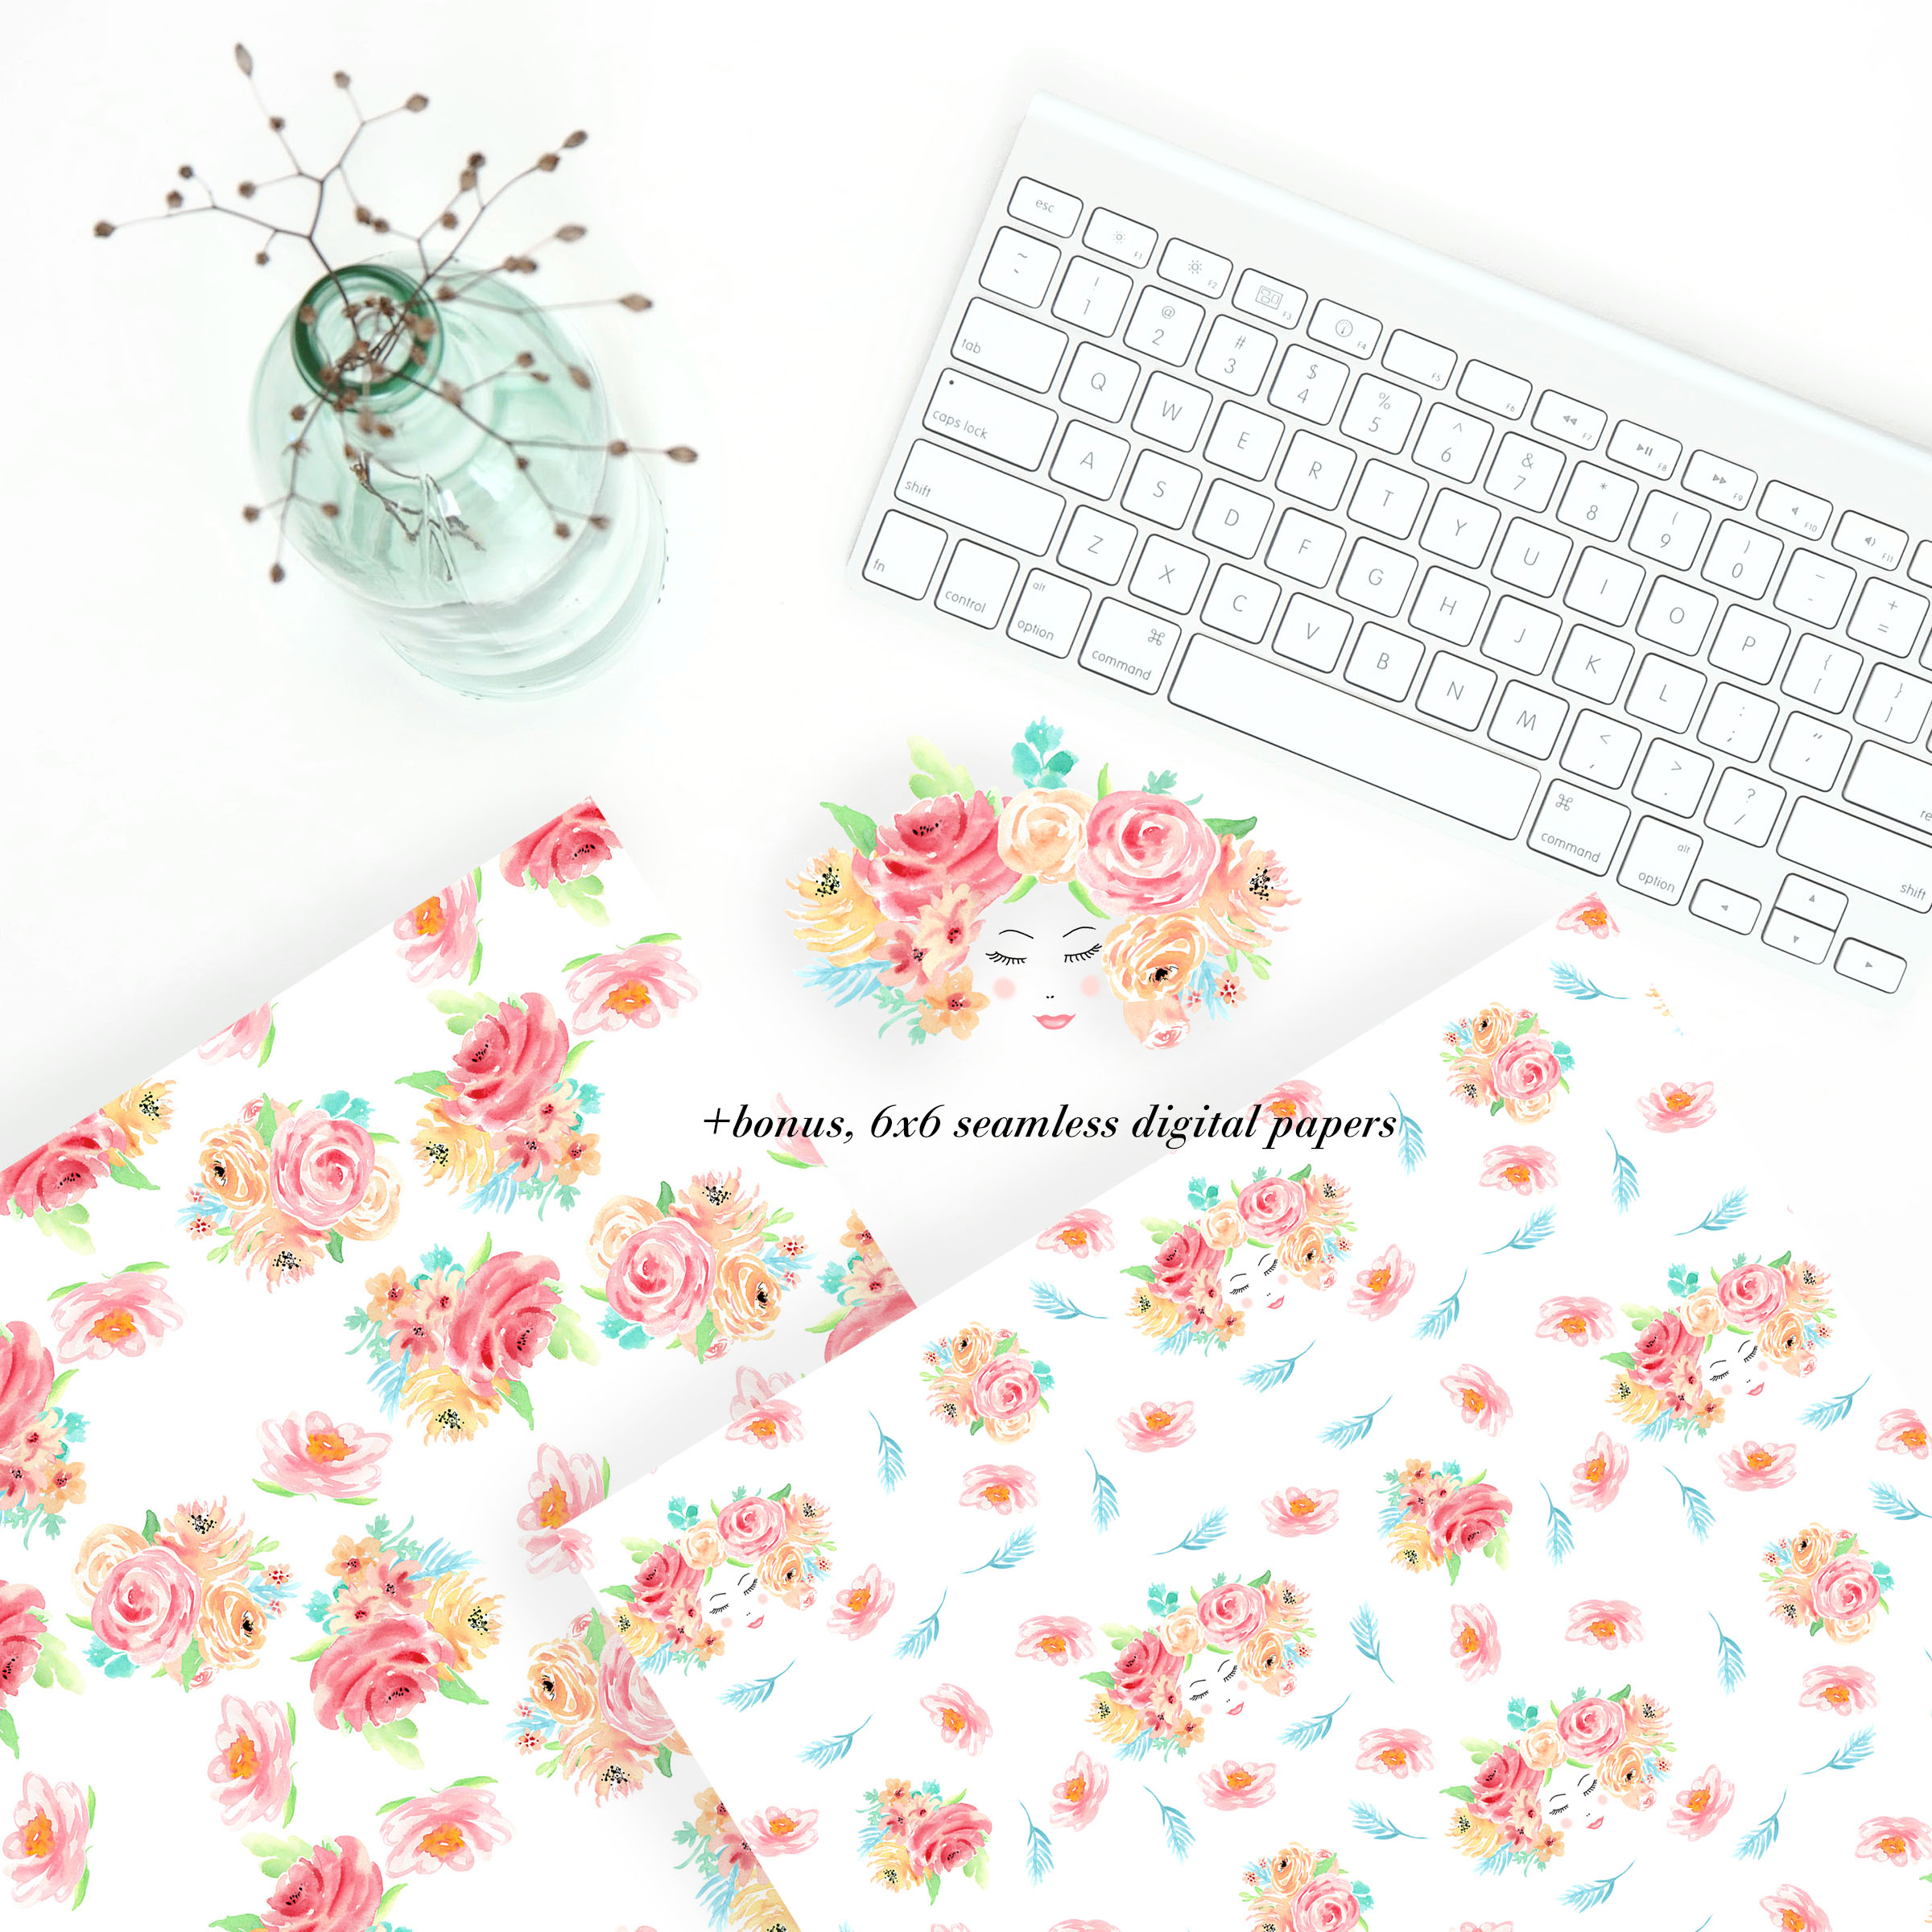 Watercolor flowers clip art. For wedding invitations, scrapbook, thank you card, logo creations. BOHO, Hand painted Watercolor floral example image 4